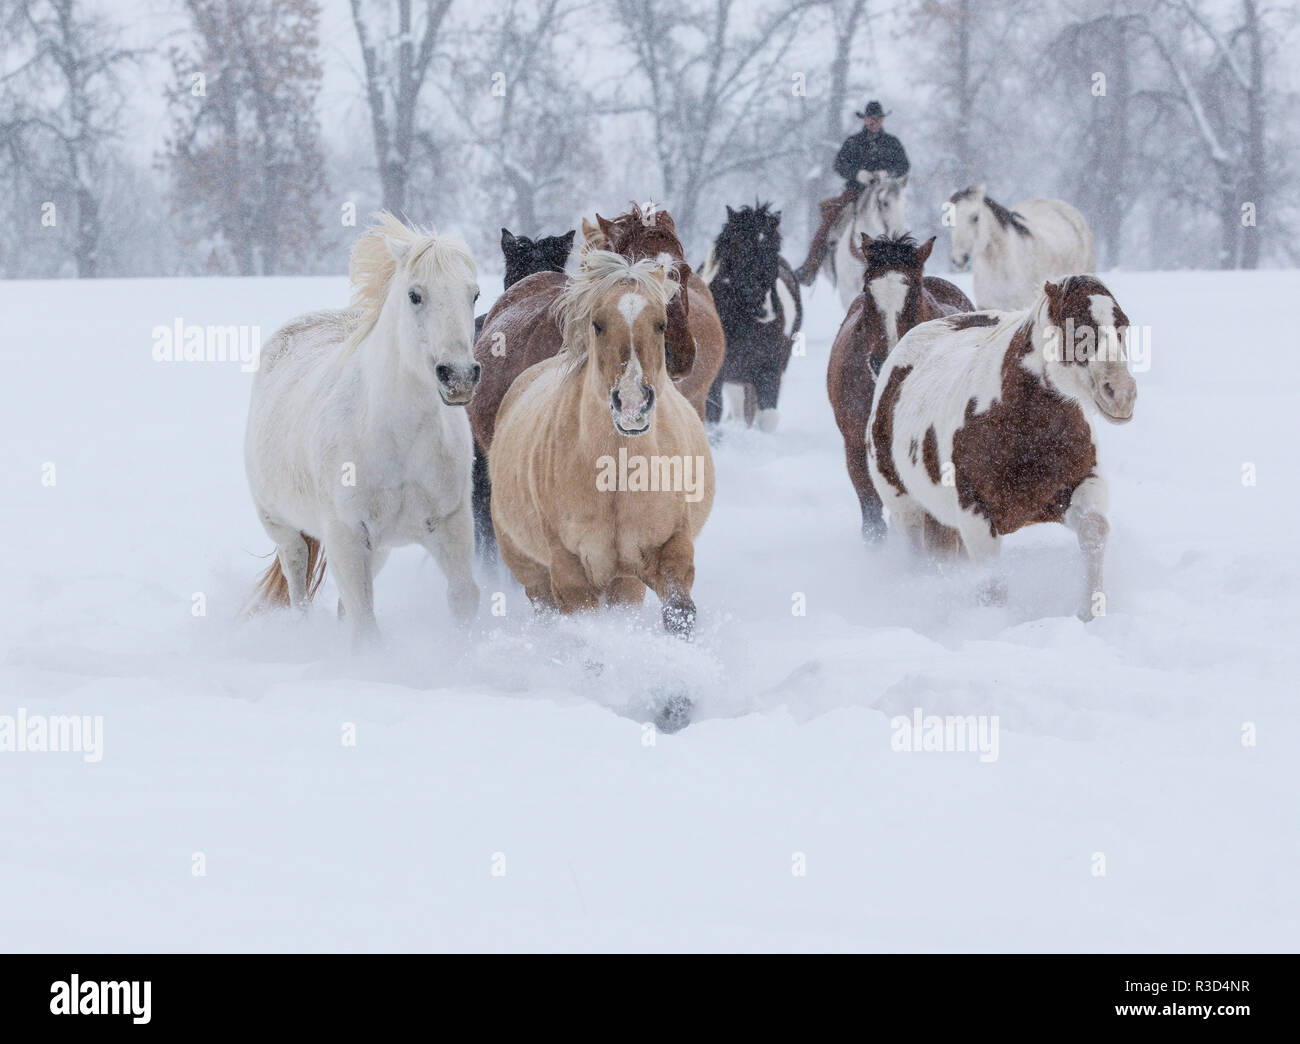 Horses running through snow, Hideout Ranch, Shell, Wyoming. (MR, PR) - Stock Image